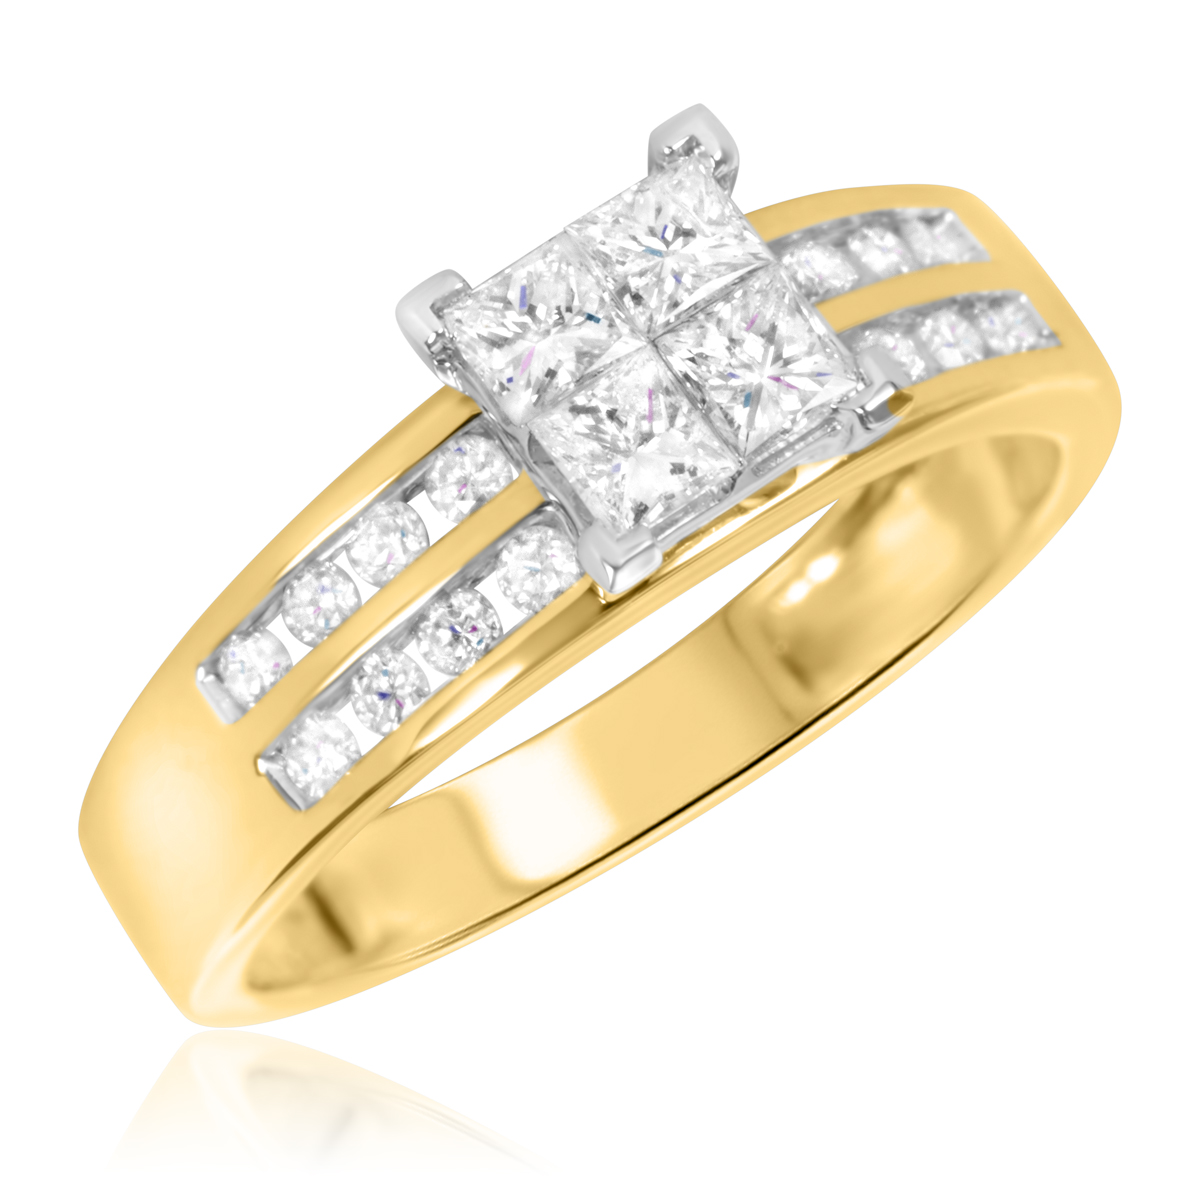 1 CT T W Diamond La s Bridal Wedding Ring Set 10K Yellow Gold